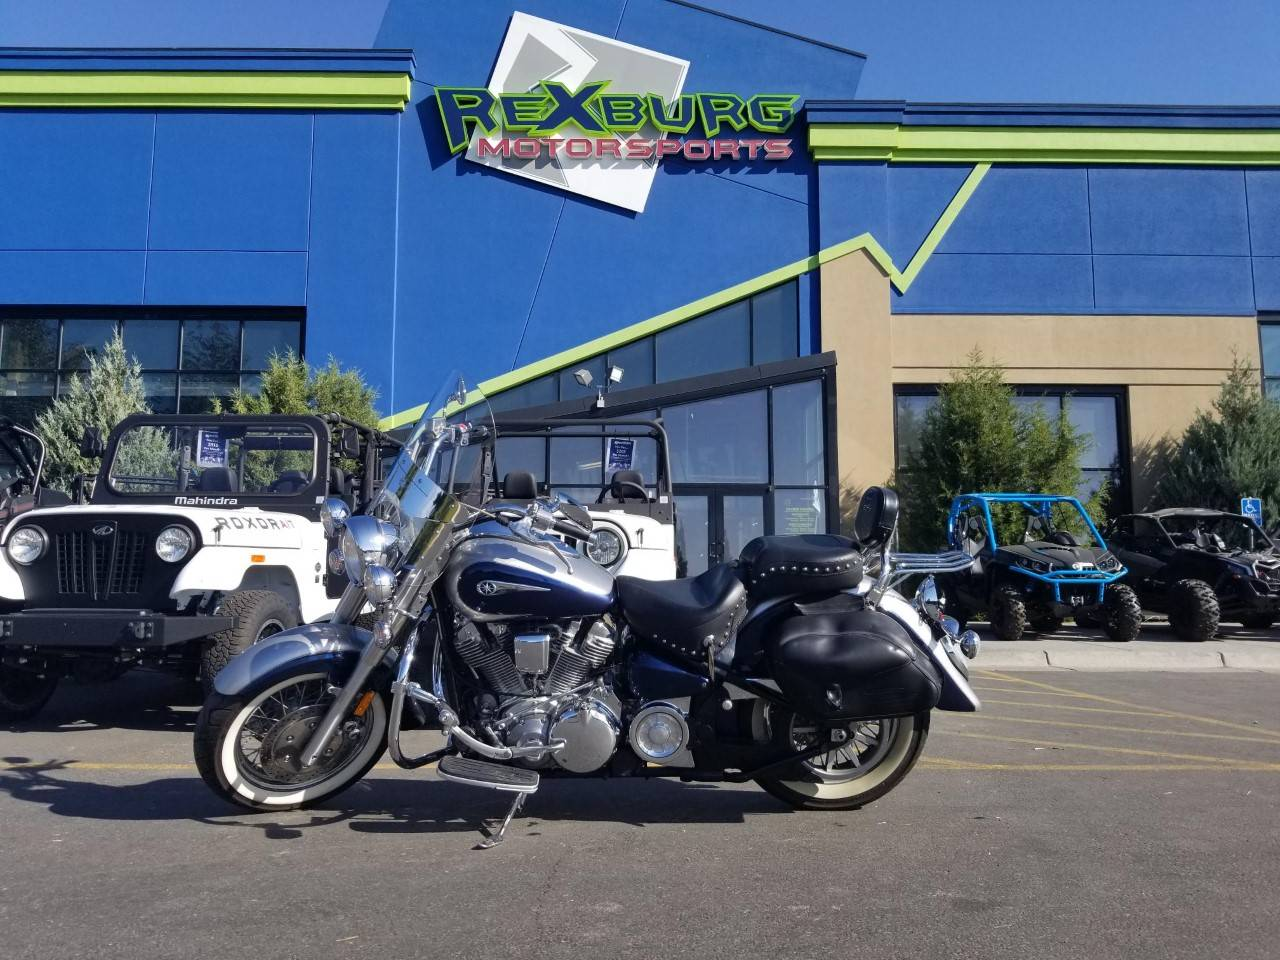 2007 Yamaha Road Star in Rexburg, Idaho - Photo 1